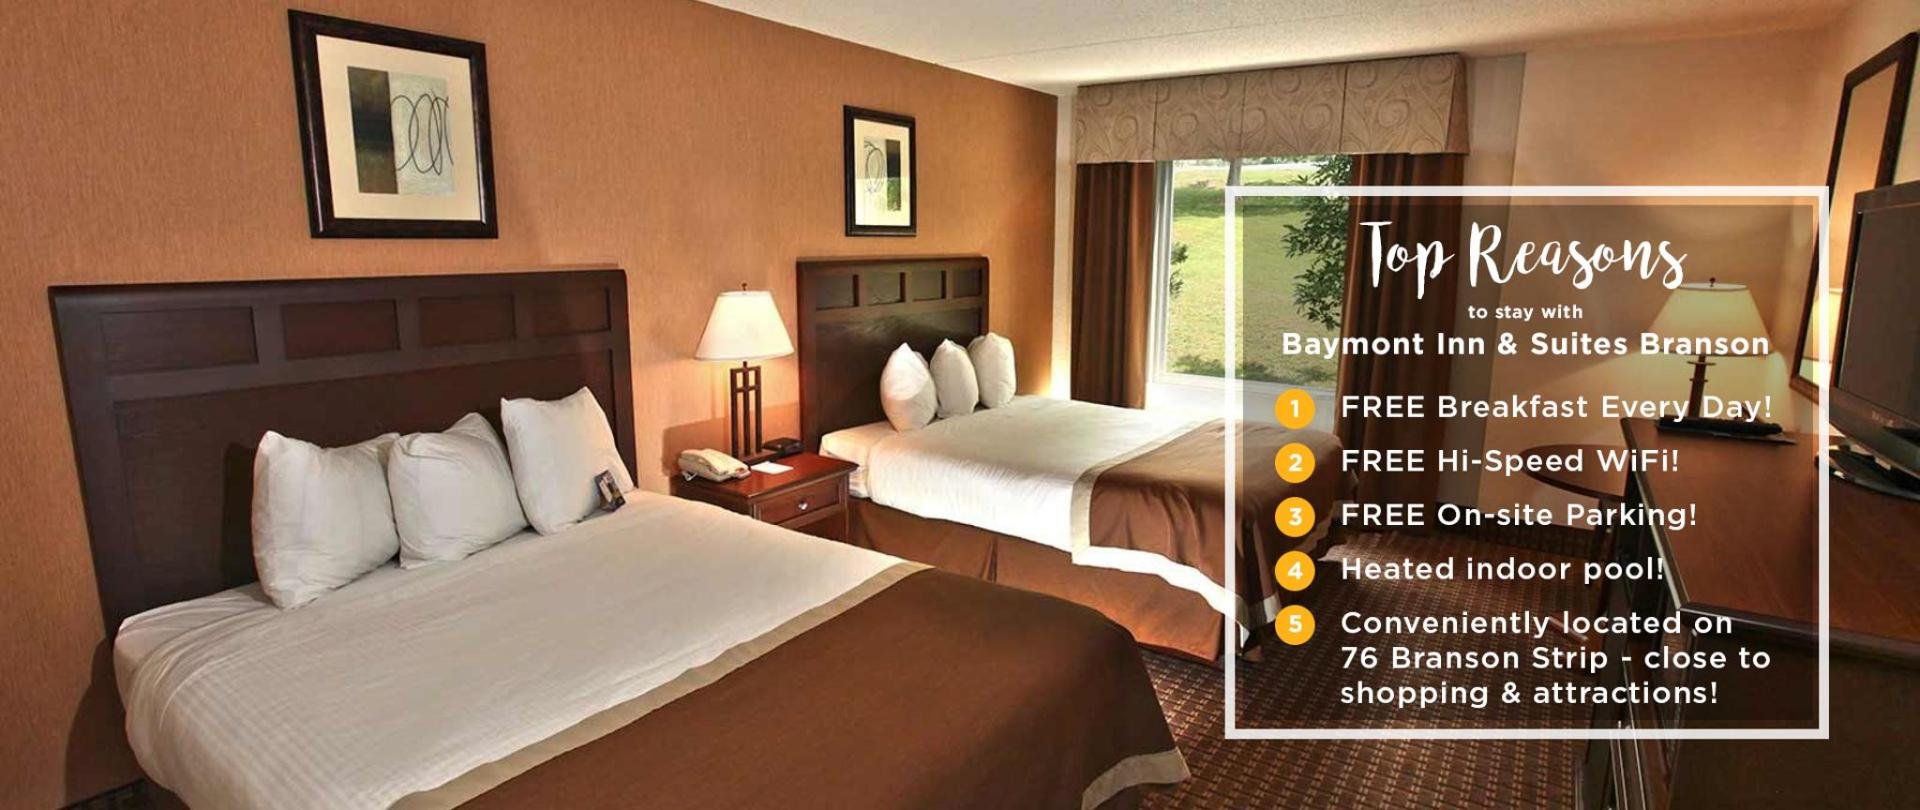 baymont-inn-and-suites-branson-on-the-strip-reasons-to-stay-3.png